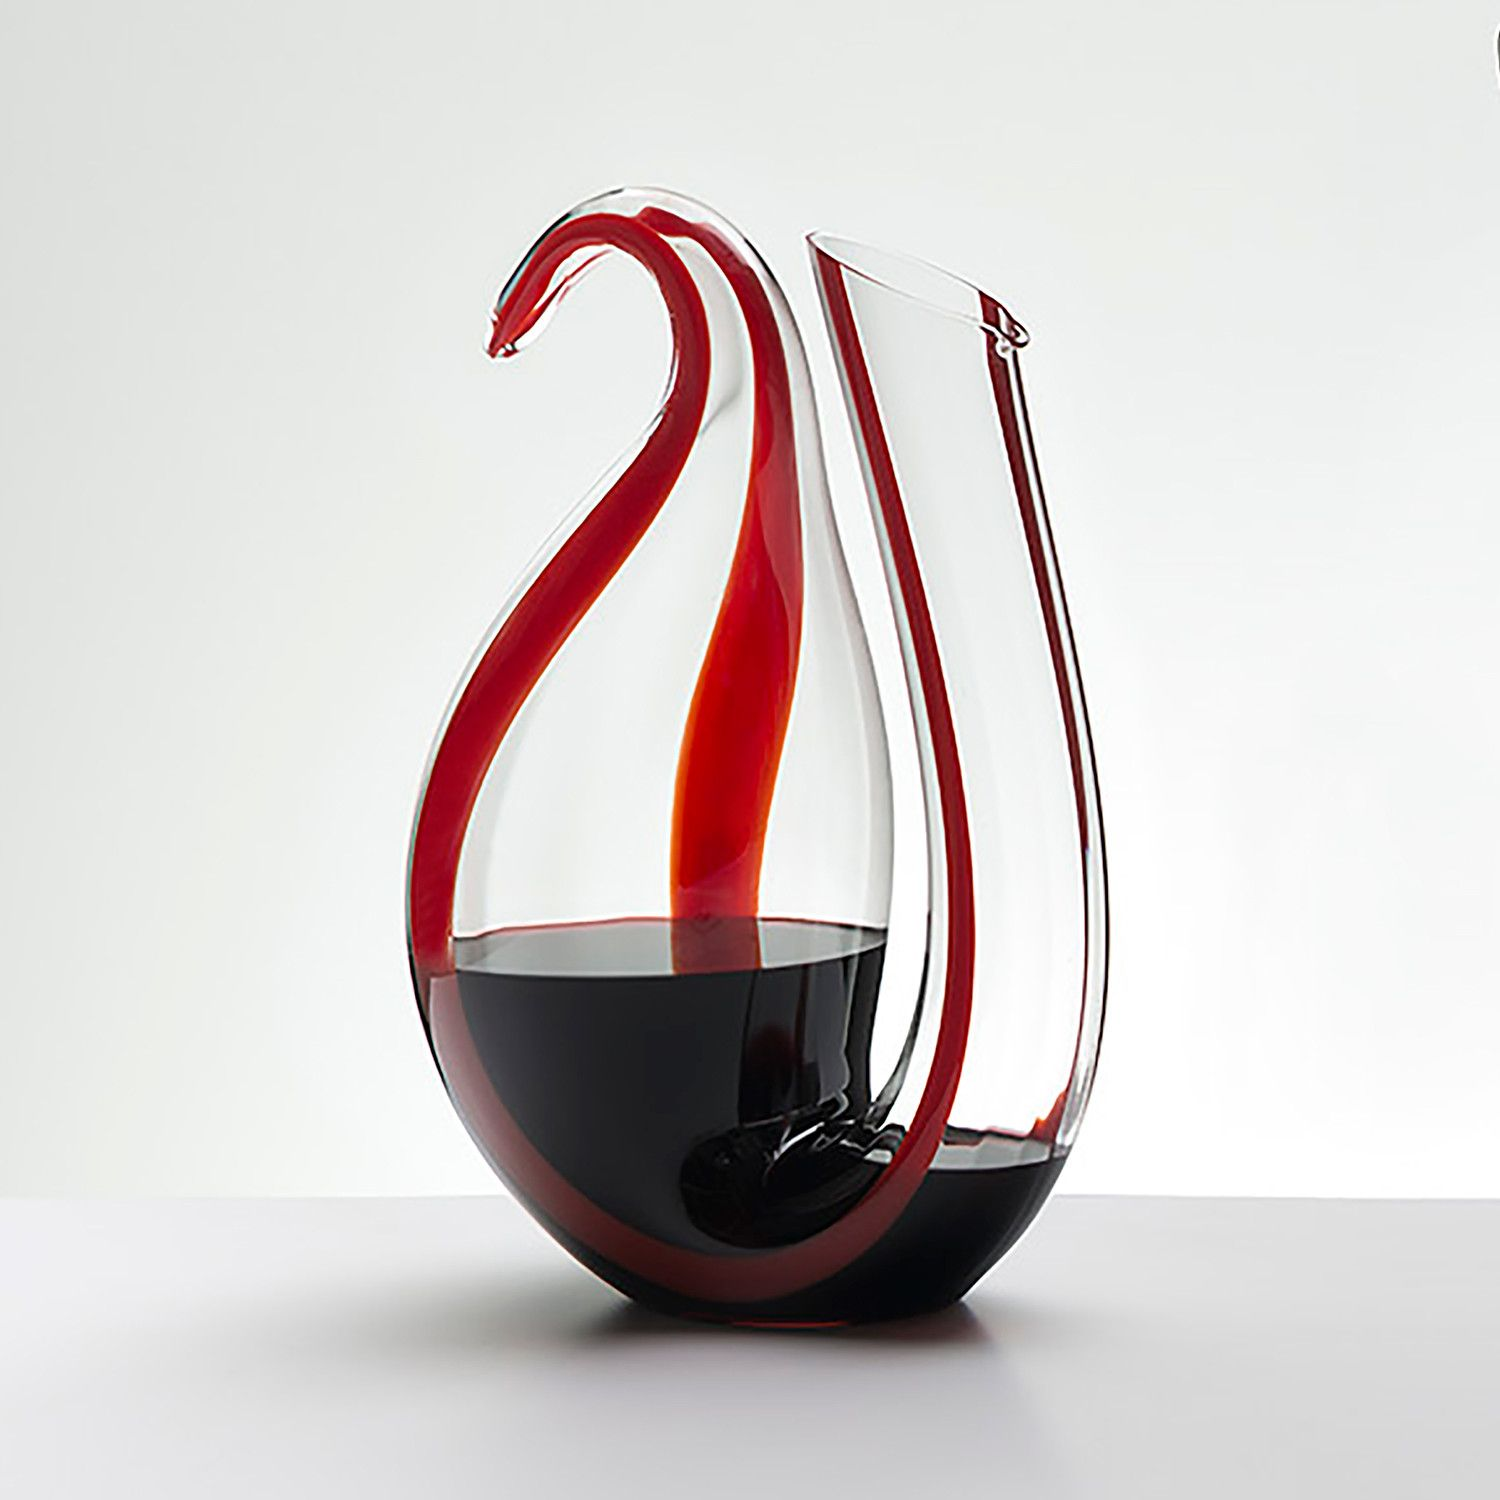 Pre Order Ayam Magnum Decanter Red Limited Edition As An Homage To The Chinese Year Of The Rooster Riedel Is Prod Decanter Dining Design Chinese Year